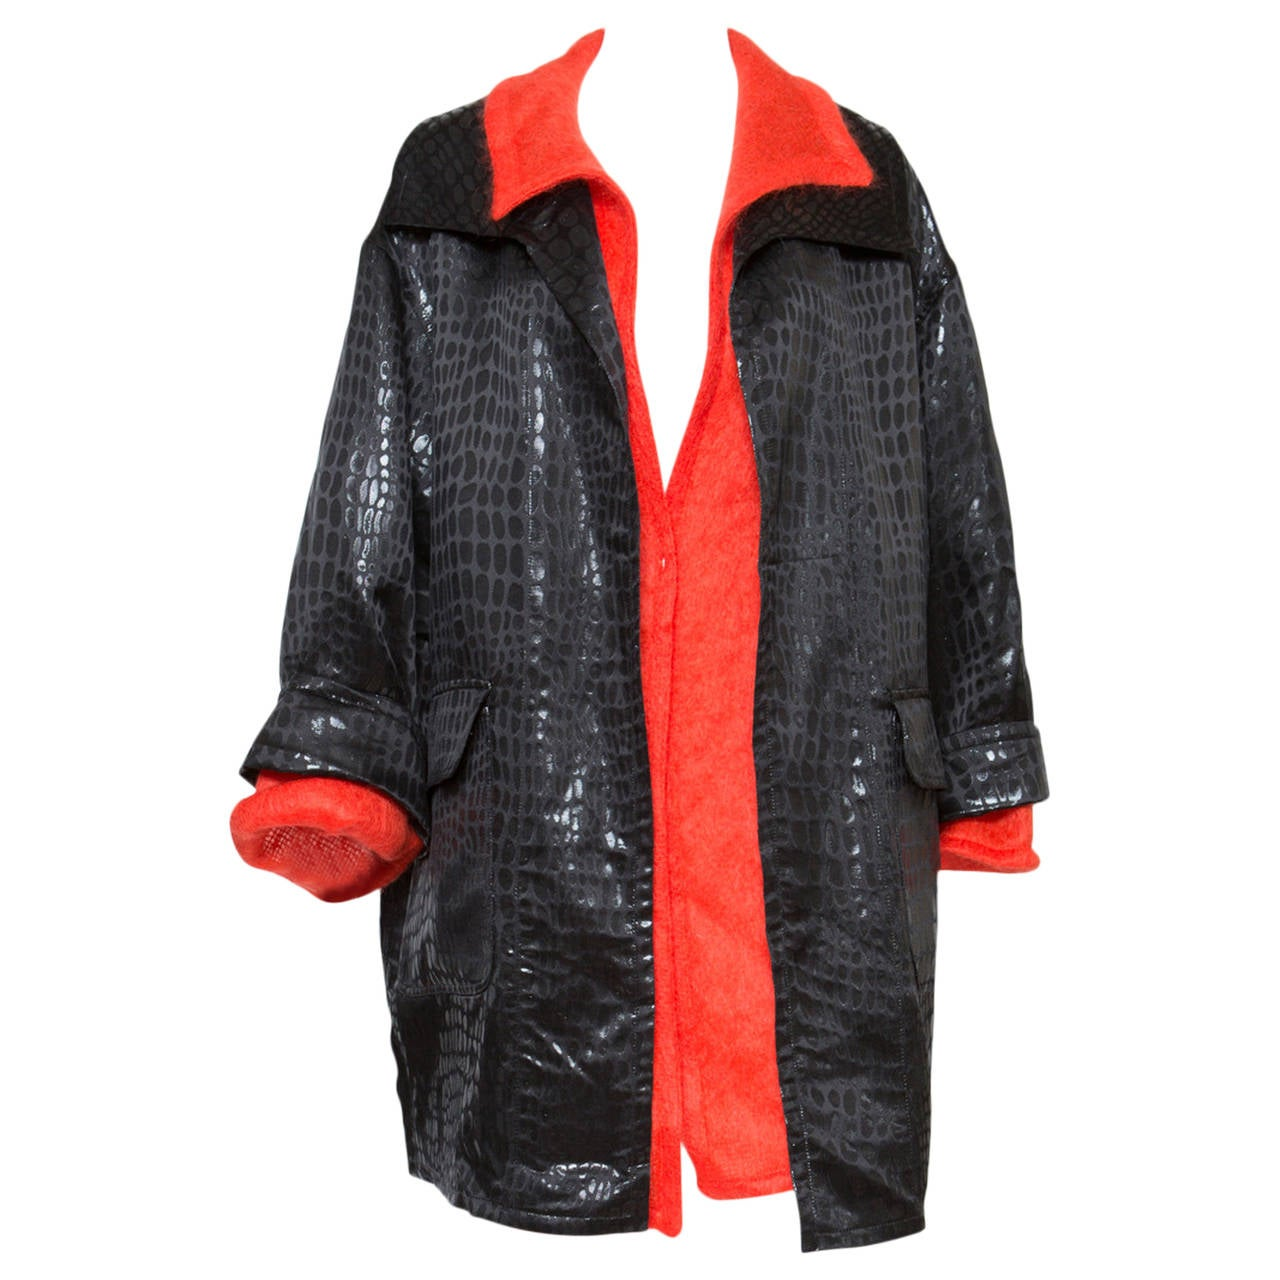 1980s Valentino Red and Black Coat